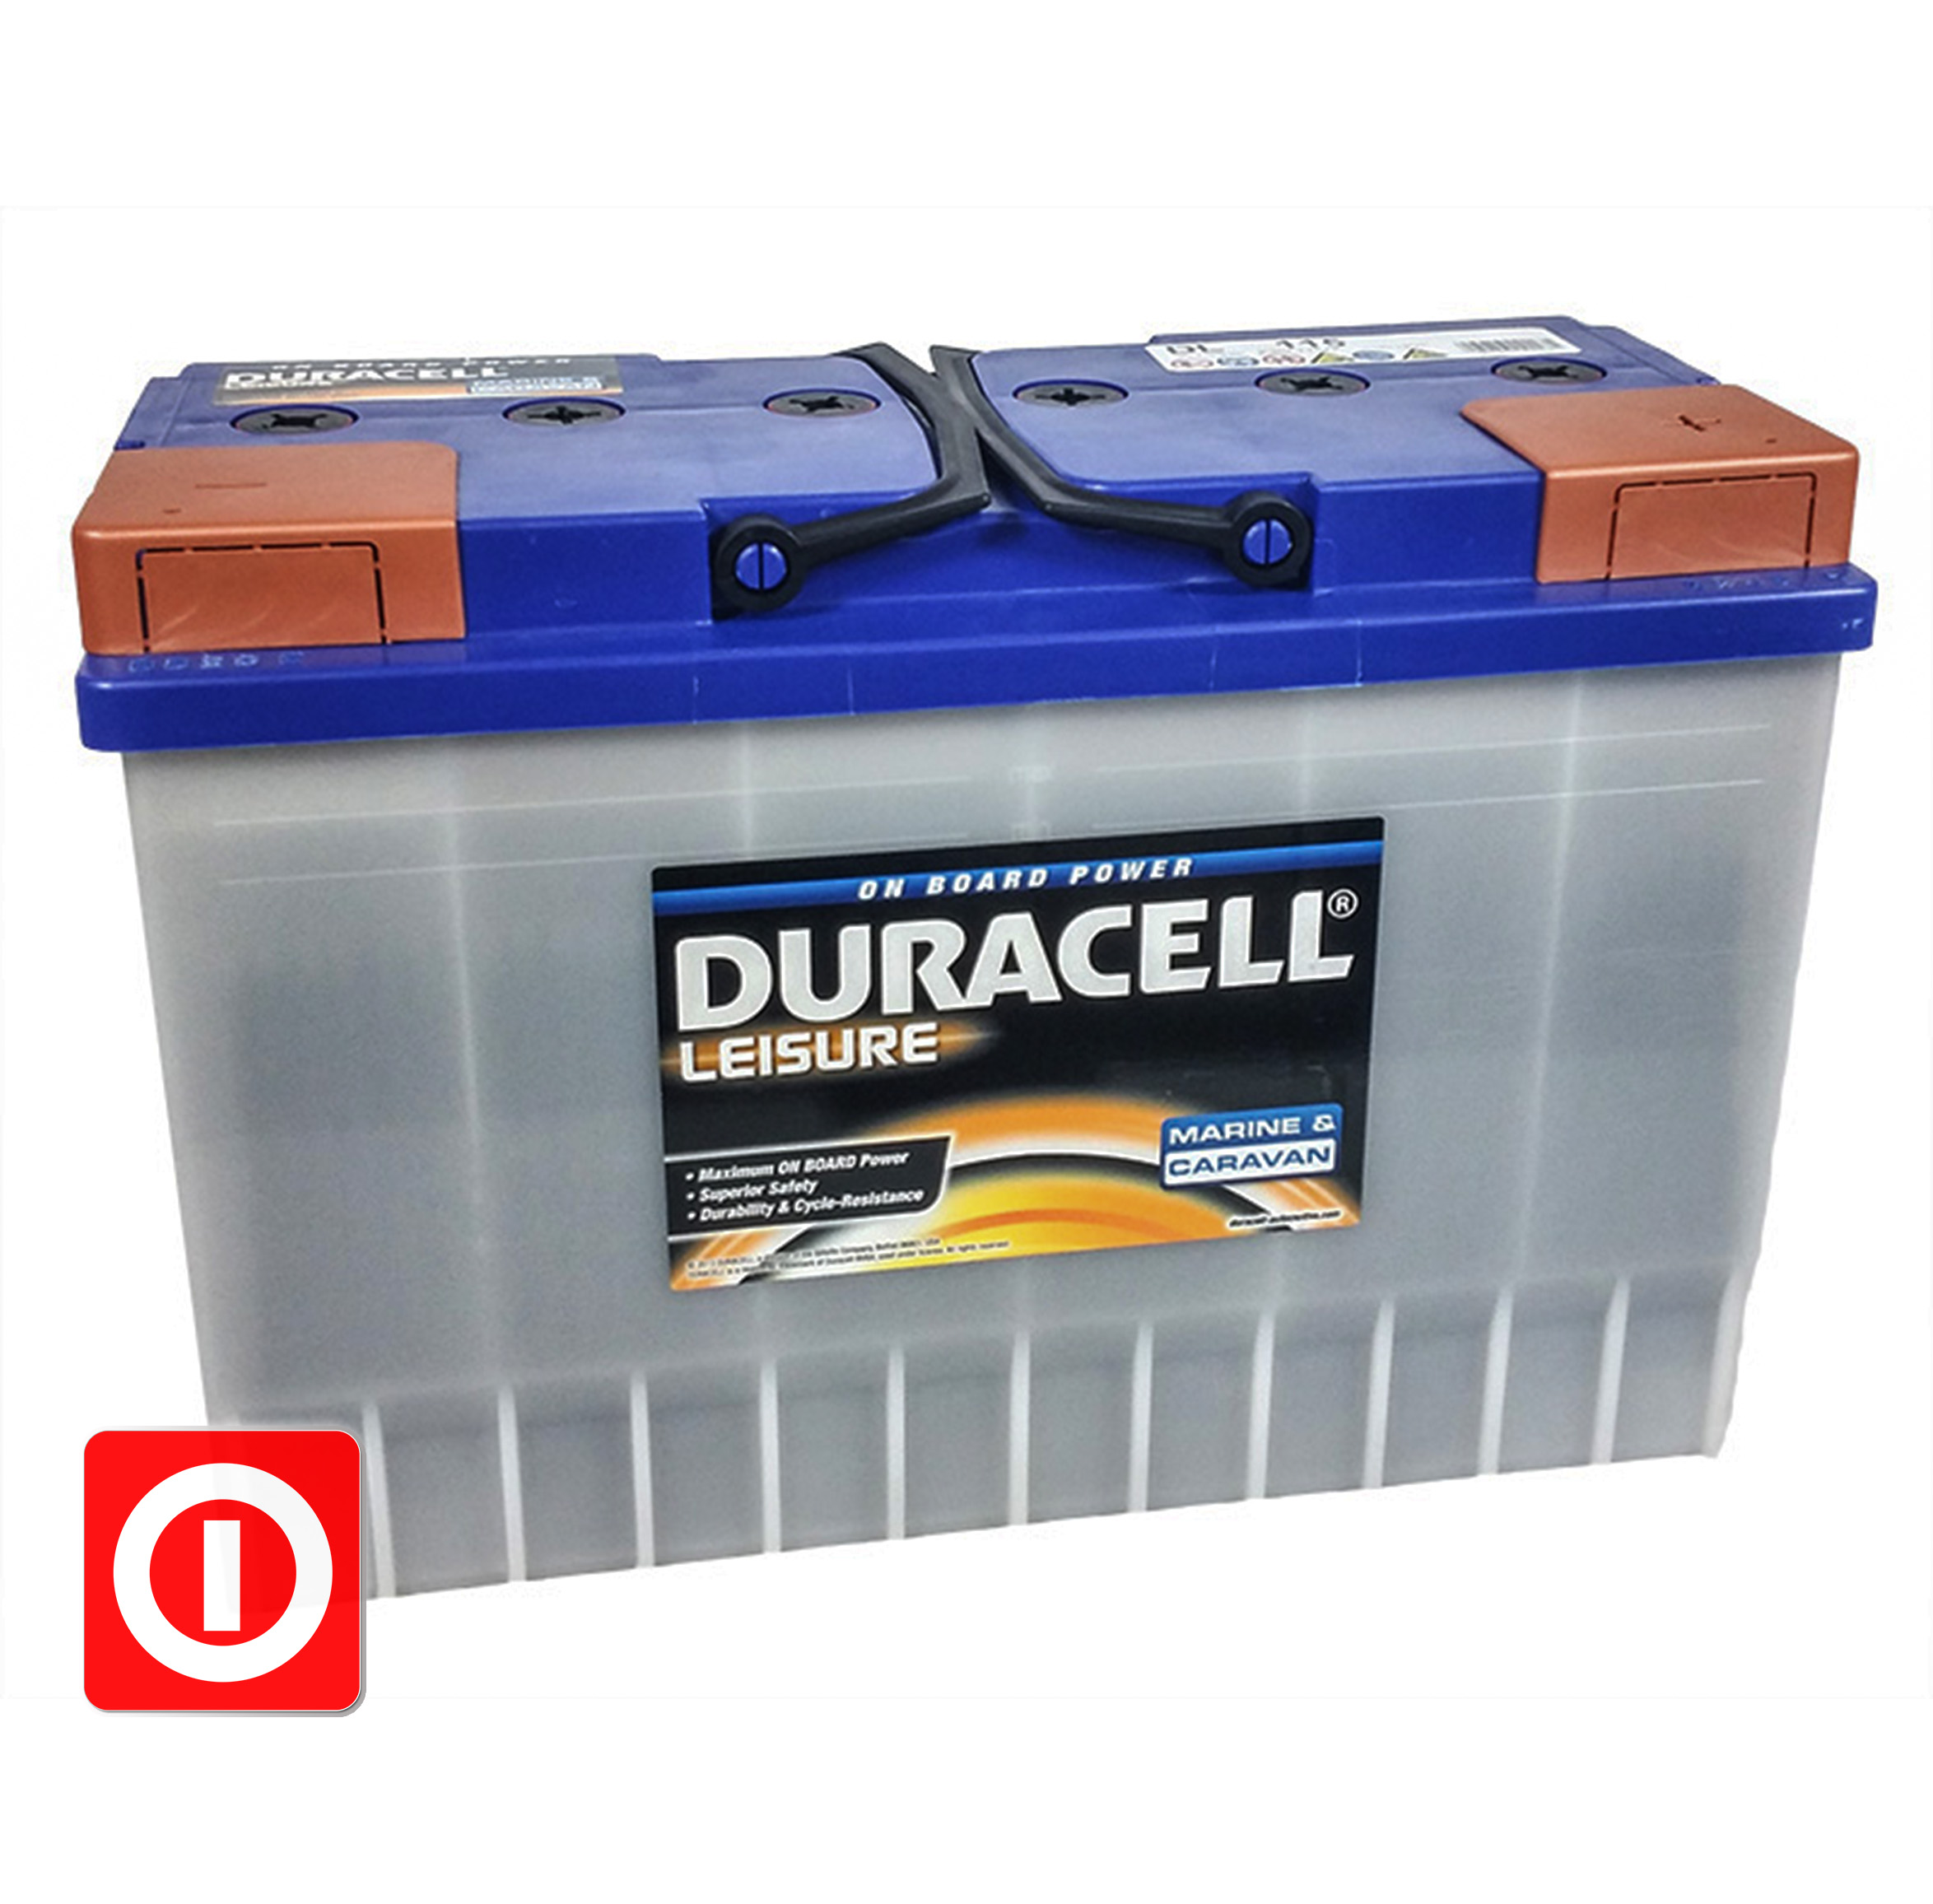 duracell leisure line